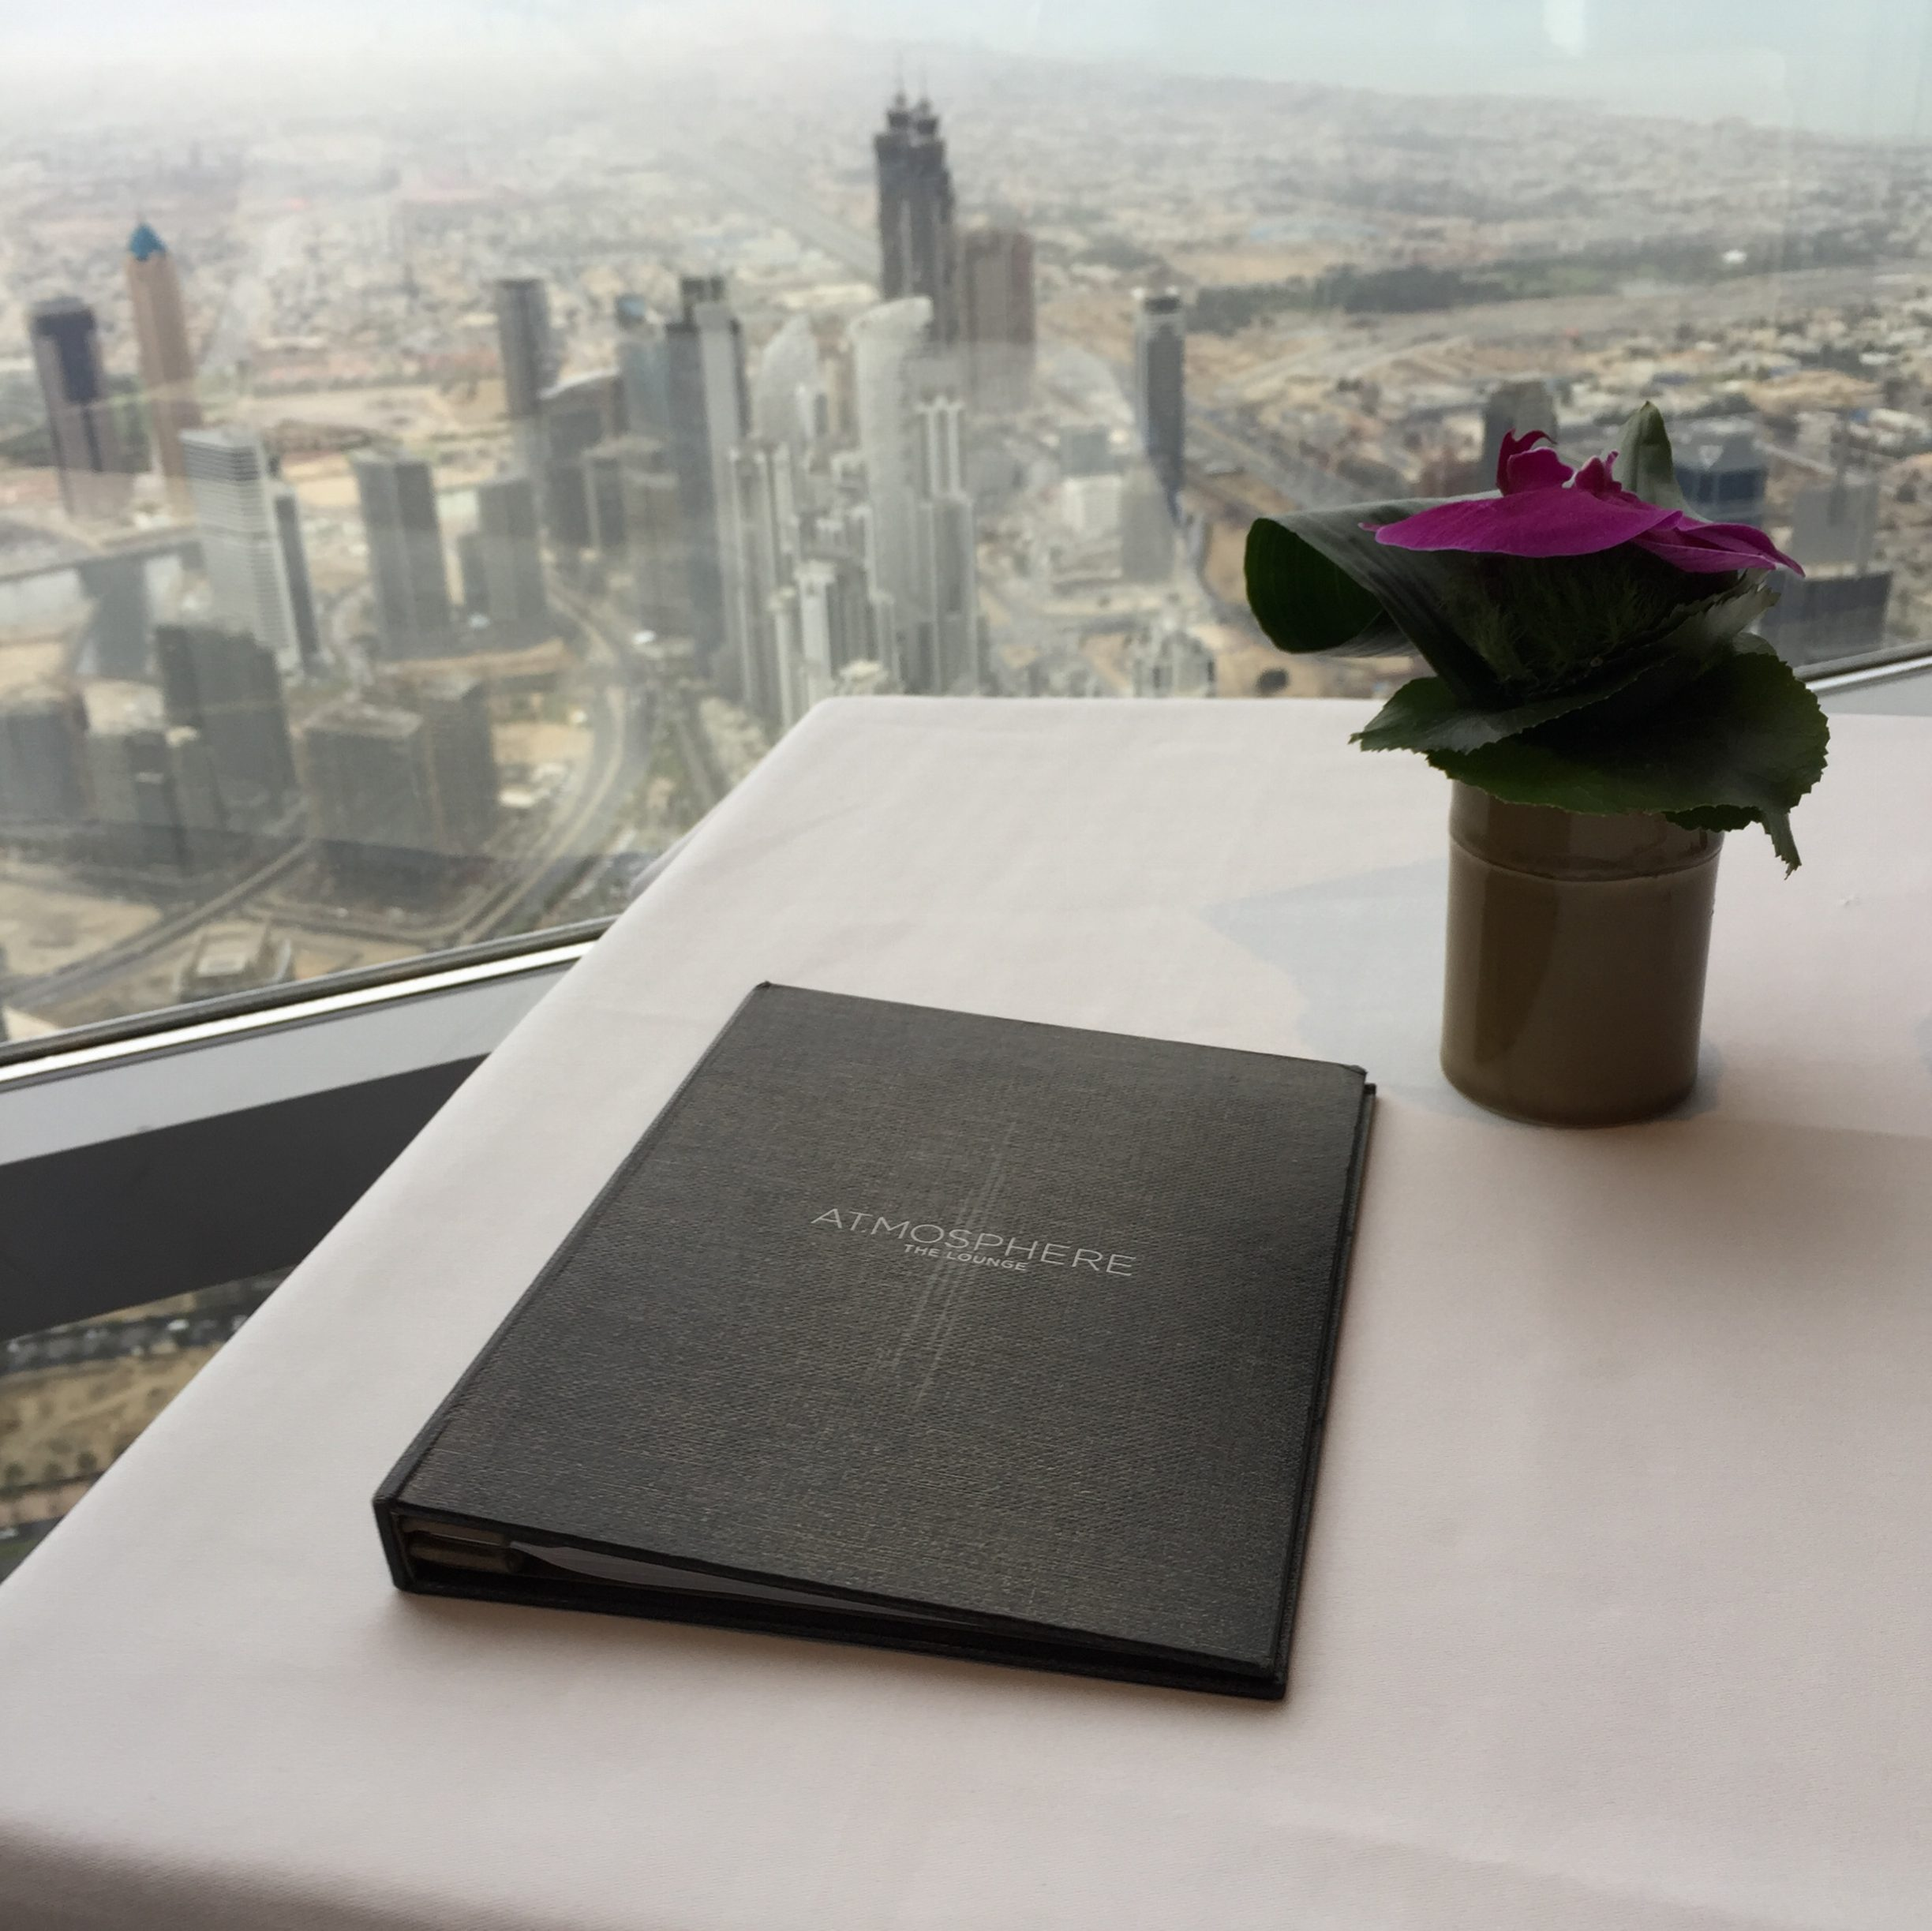 Window table at At.moshpere at Burj Khalifa